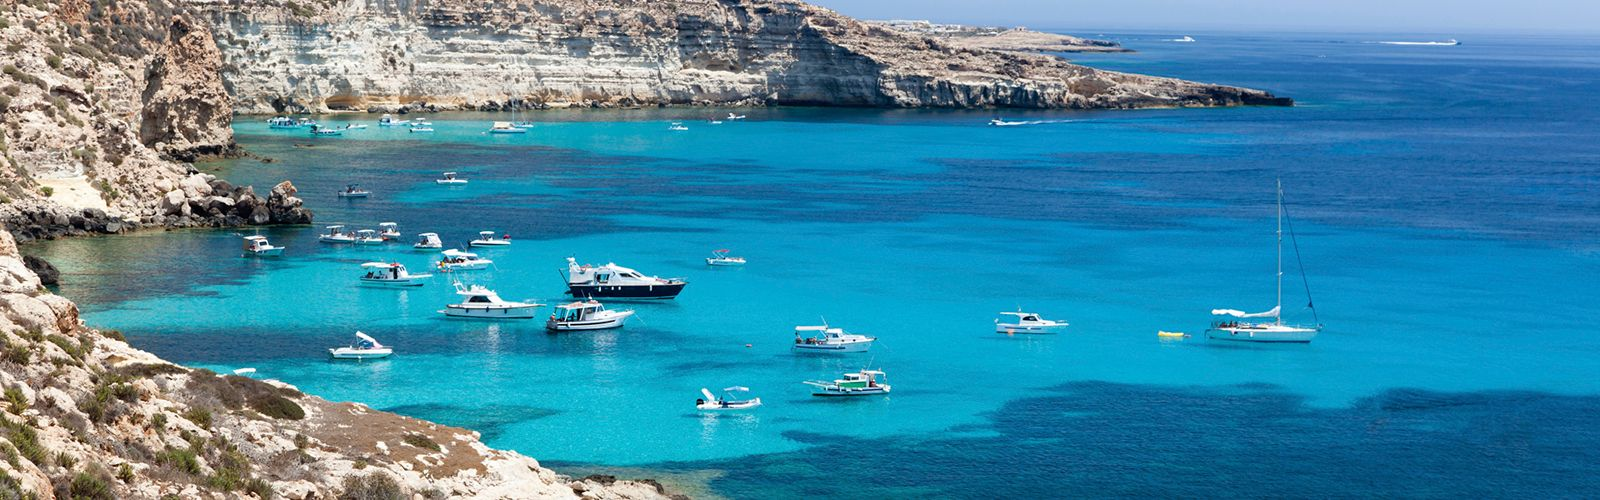 Trova week end convenienti a lampedusa i skyscanner for Soggiorno a lampedusa